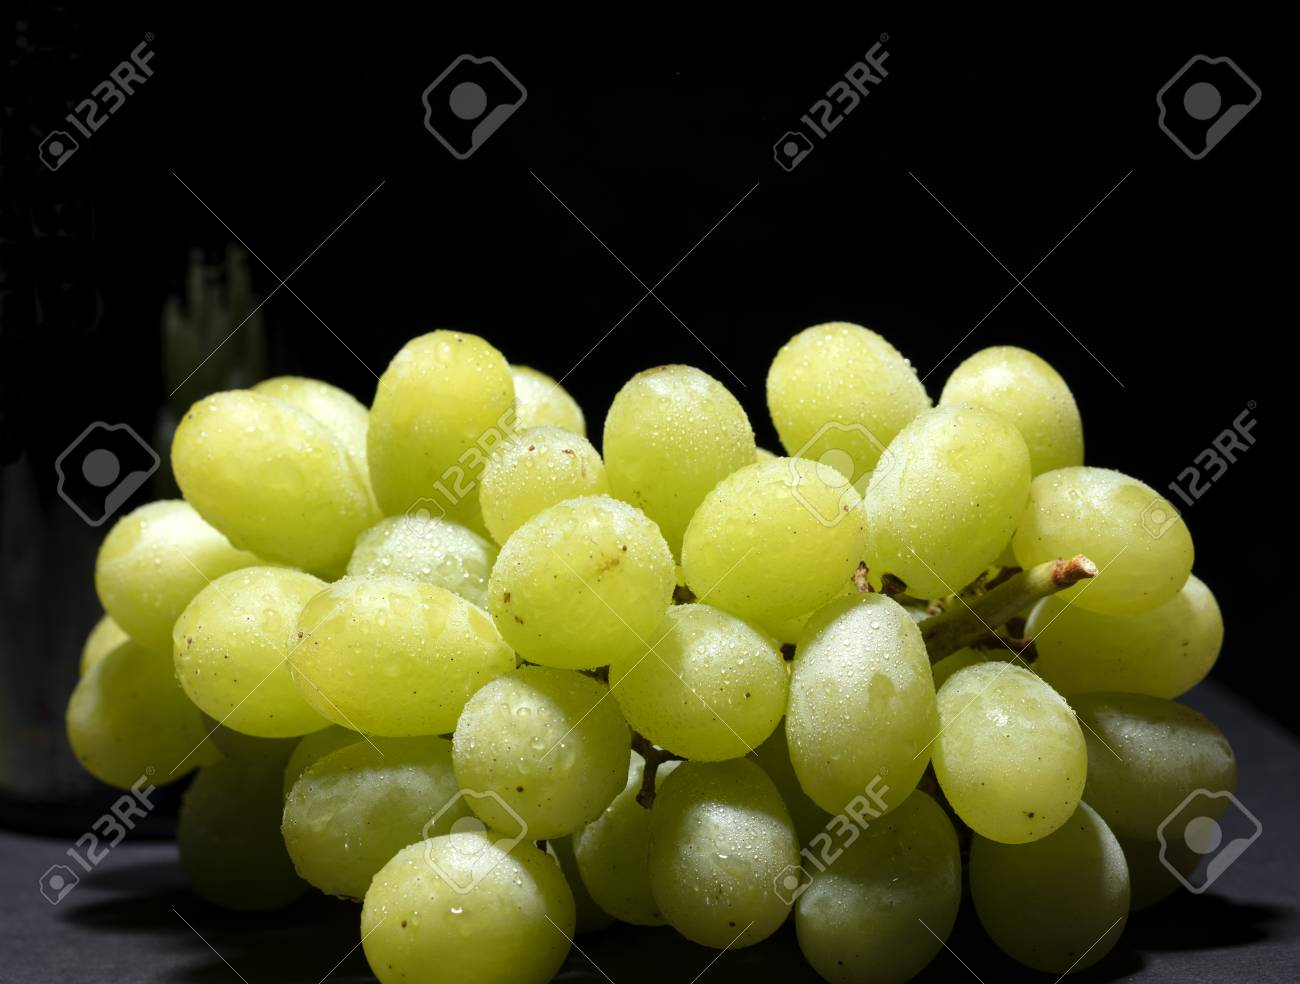 bunch of white grapes with water drops on black background - 123523726